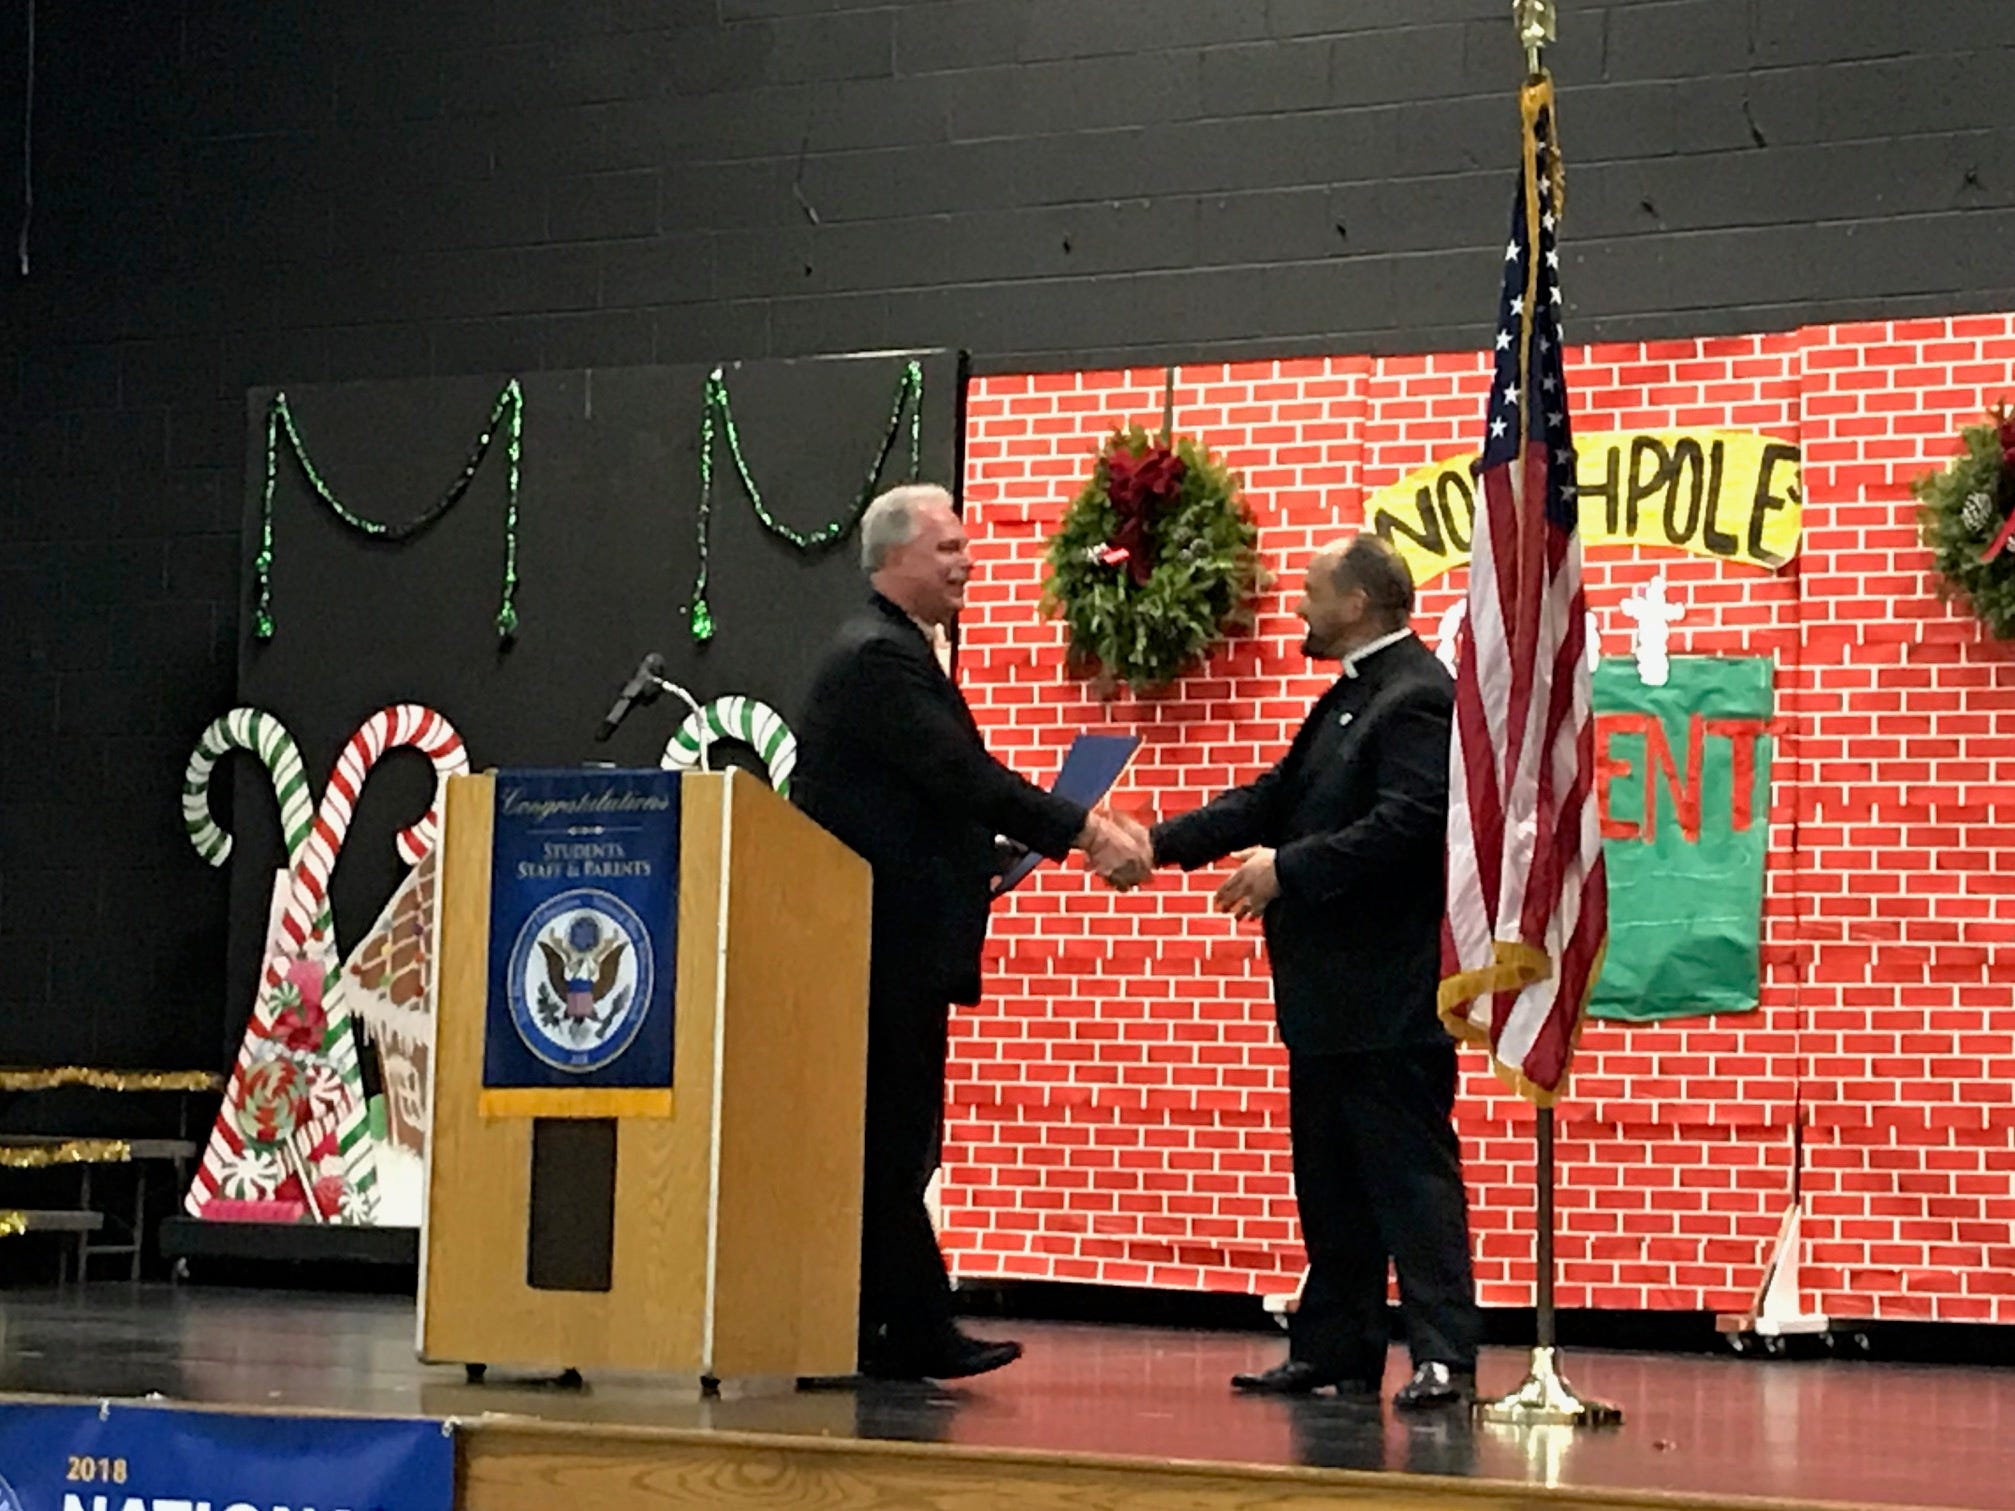 Edison Mayor Thomas Lankey addressed the group at Saint HelenaSchool in Edison, which celebration of its recognition as a 2018 NationalBlue Ribbon School.